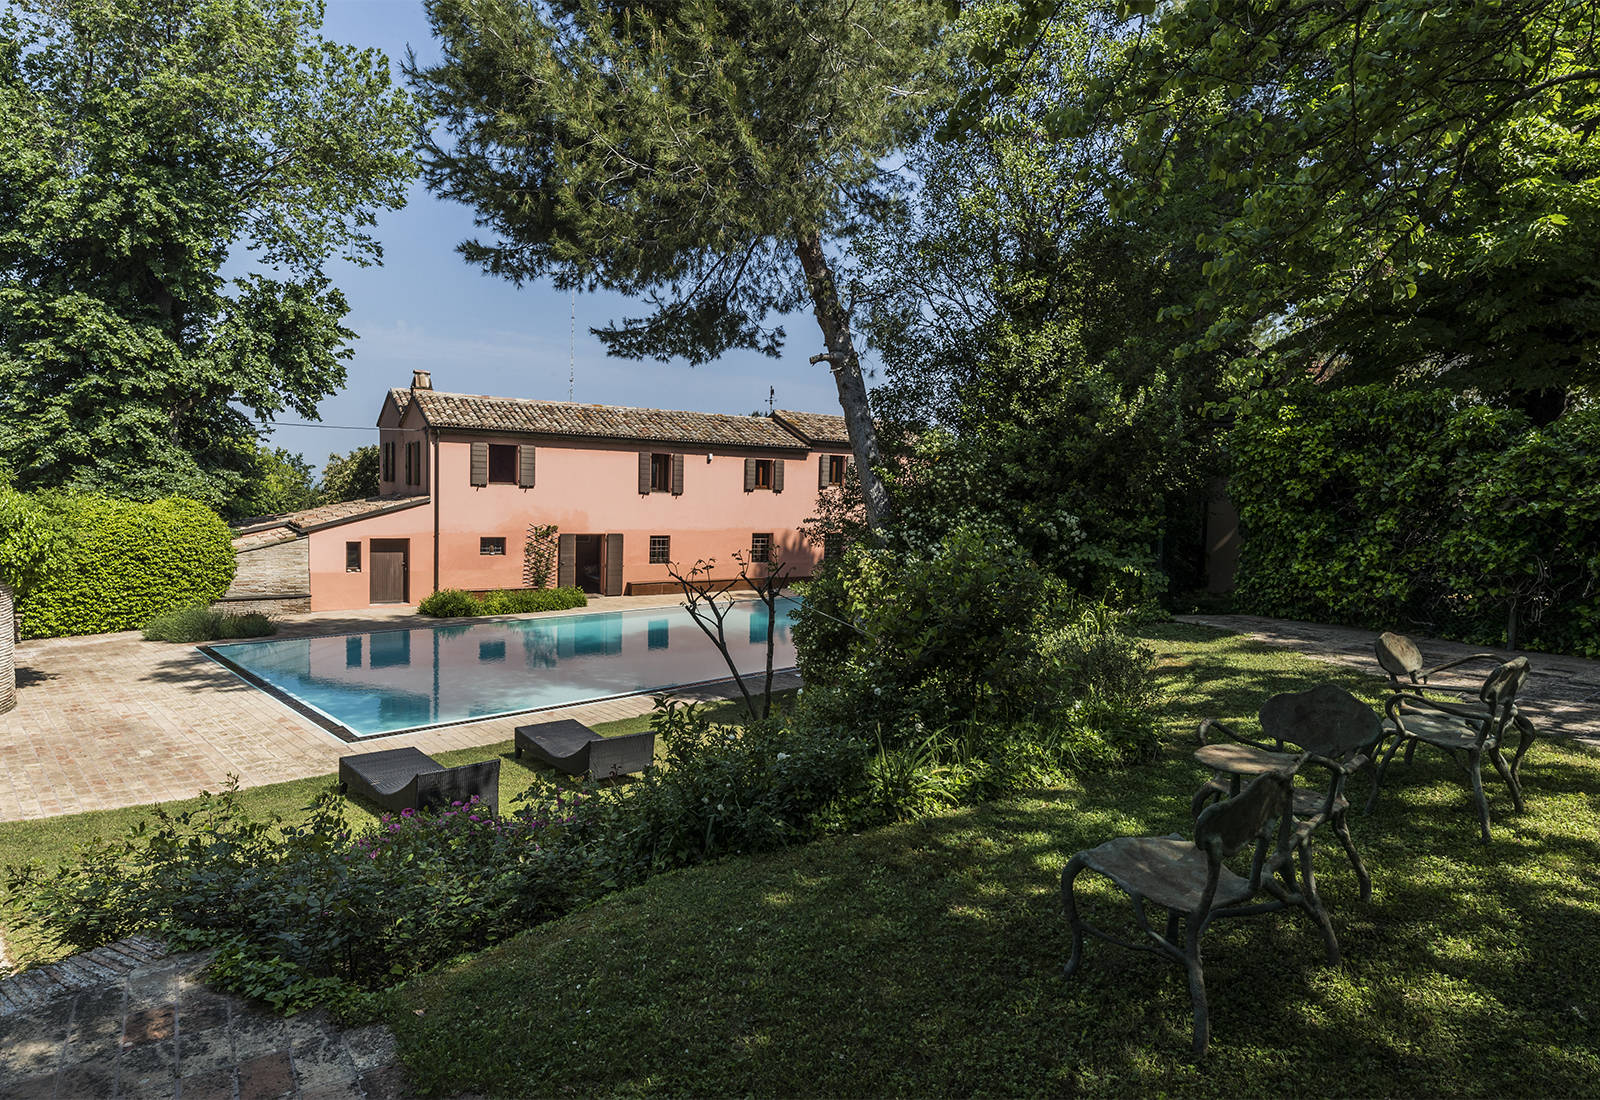 prestigious_real_estate_in_italy?id=2025